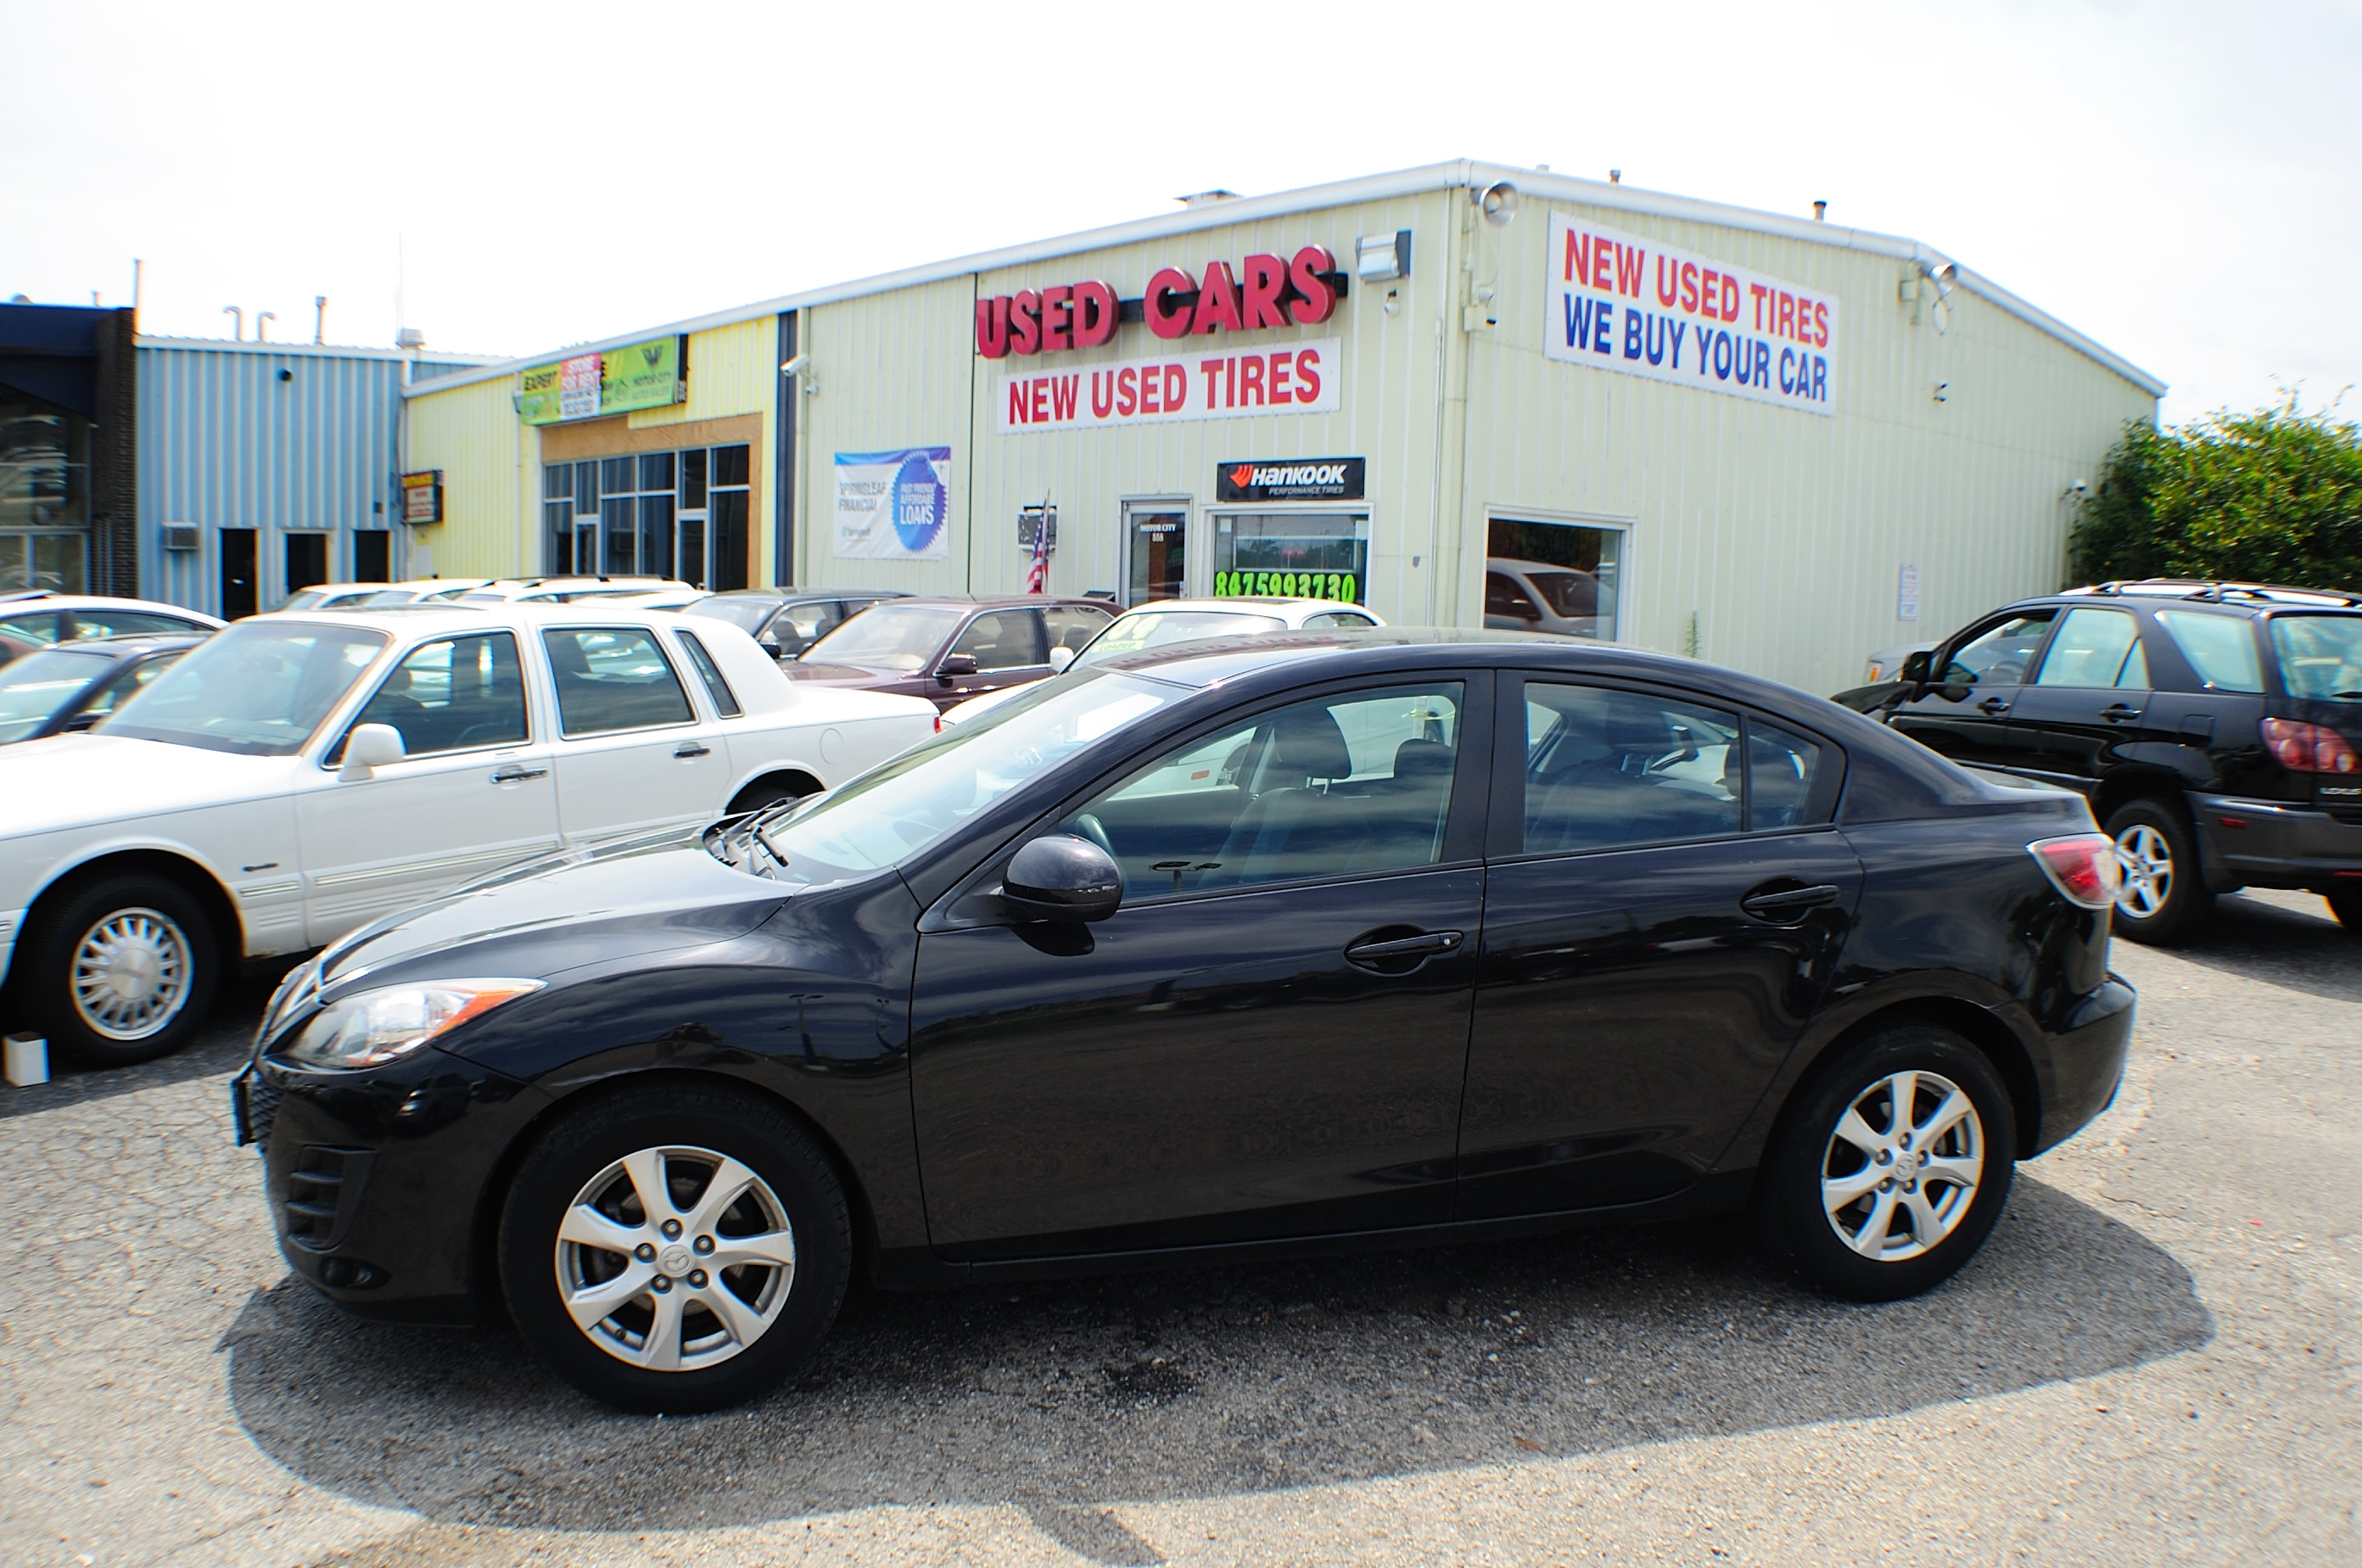 2010 Mazda 3i Black Sport Sedan used car Sale Antioch Grayslake